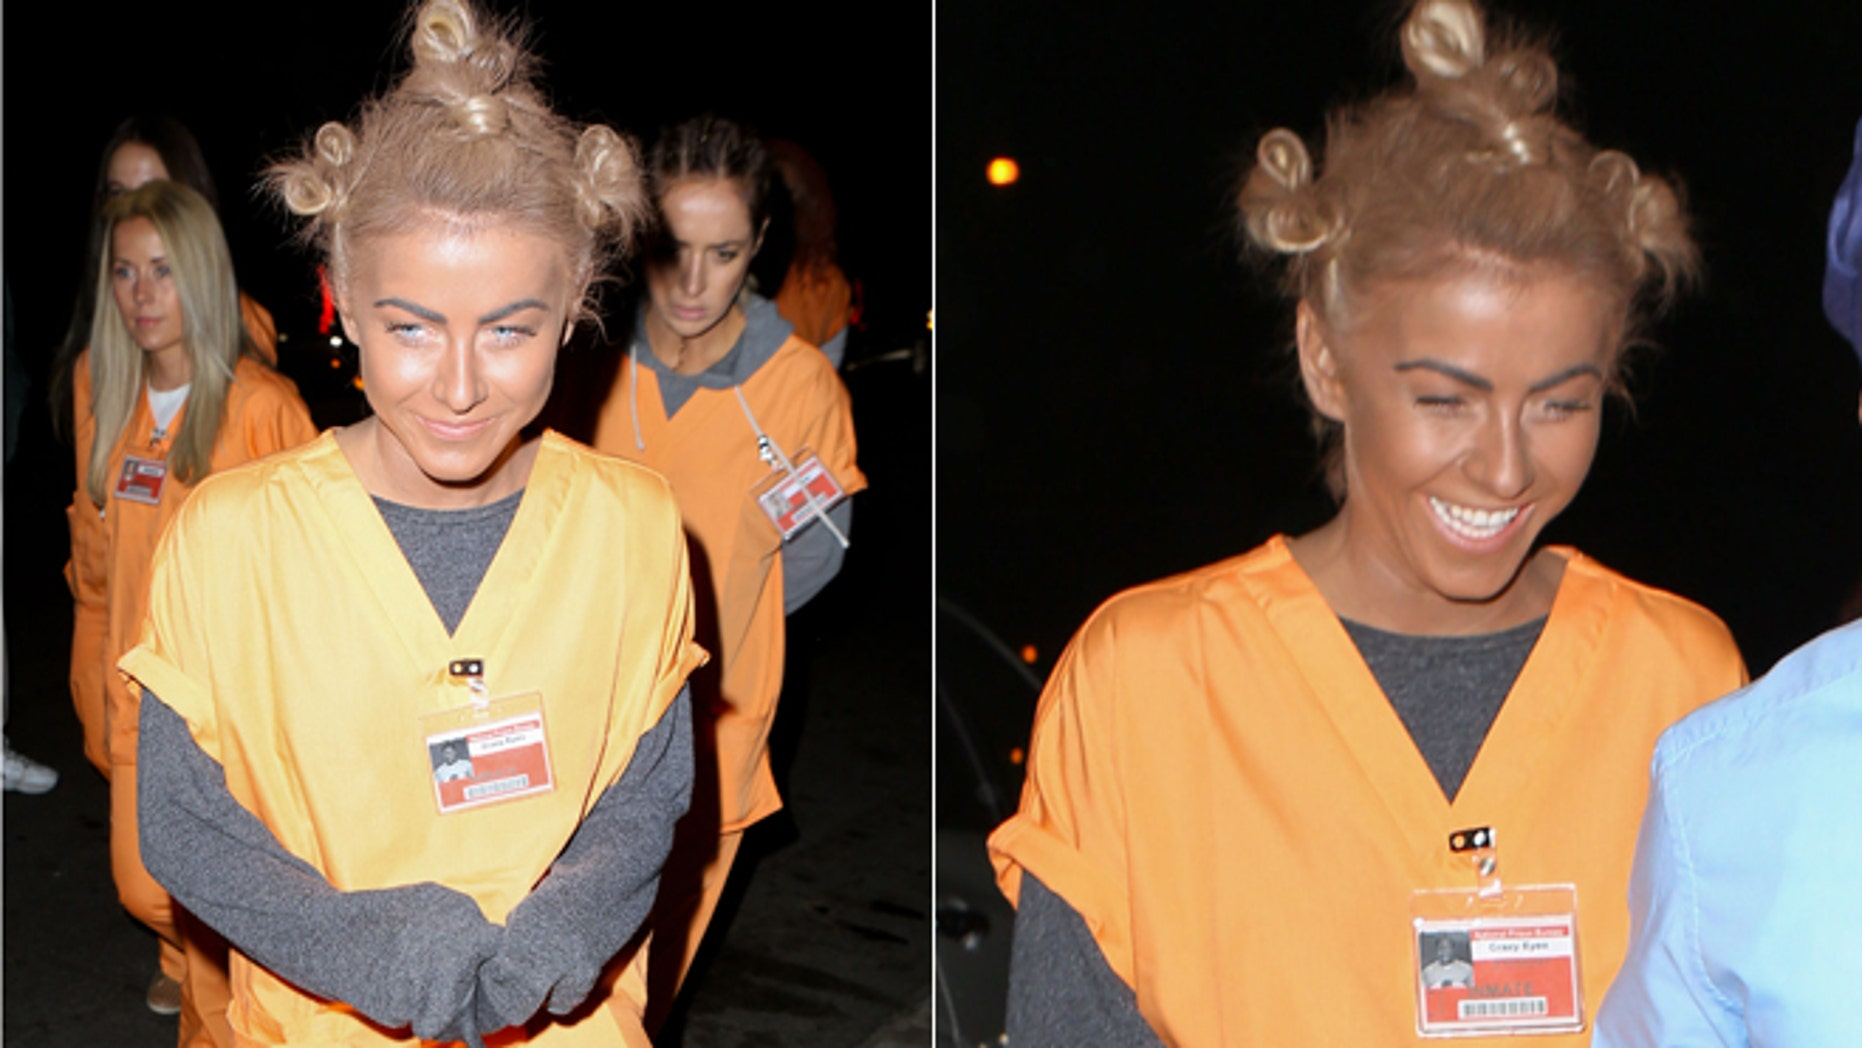 """Julianne Hough and her gal pals dressed up as the jailbirds from the Netflix hit """"Orange is the New Black."""" Hough was slammed for donning a """"black face"""" costume."""